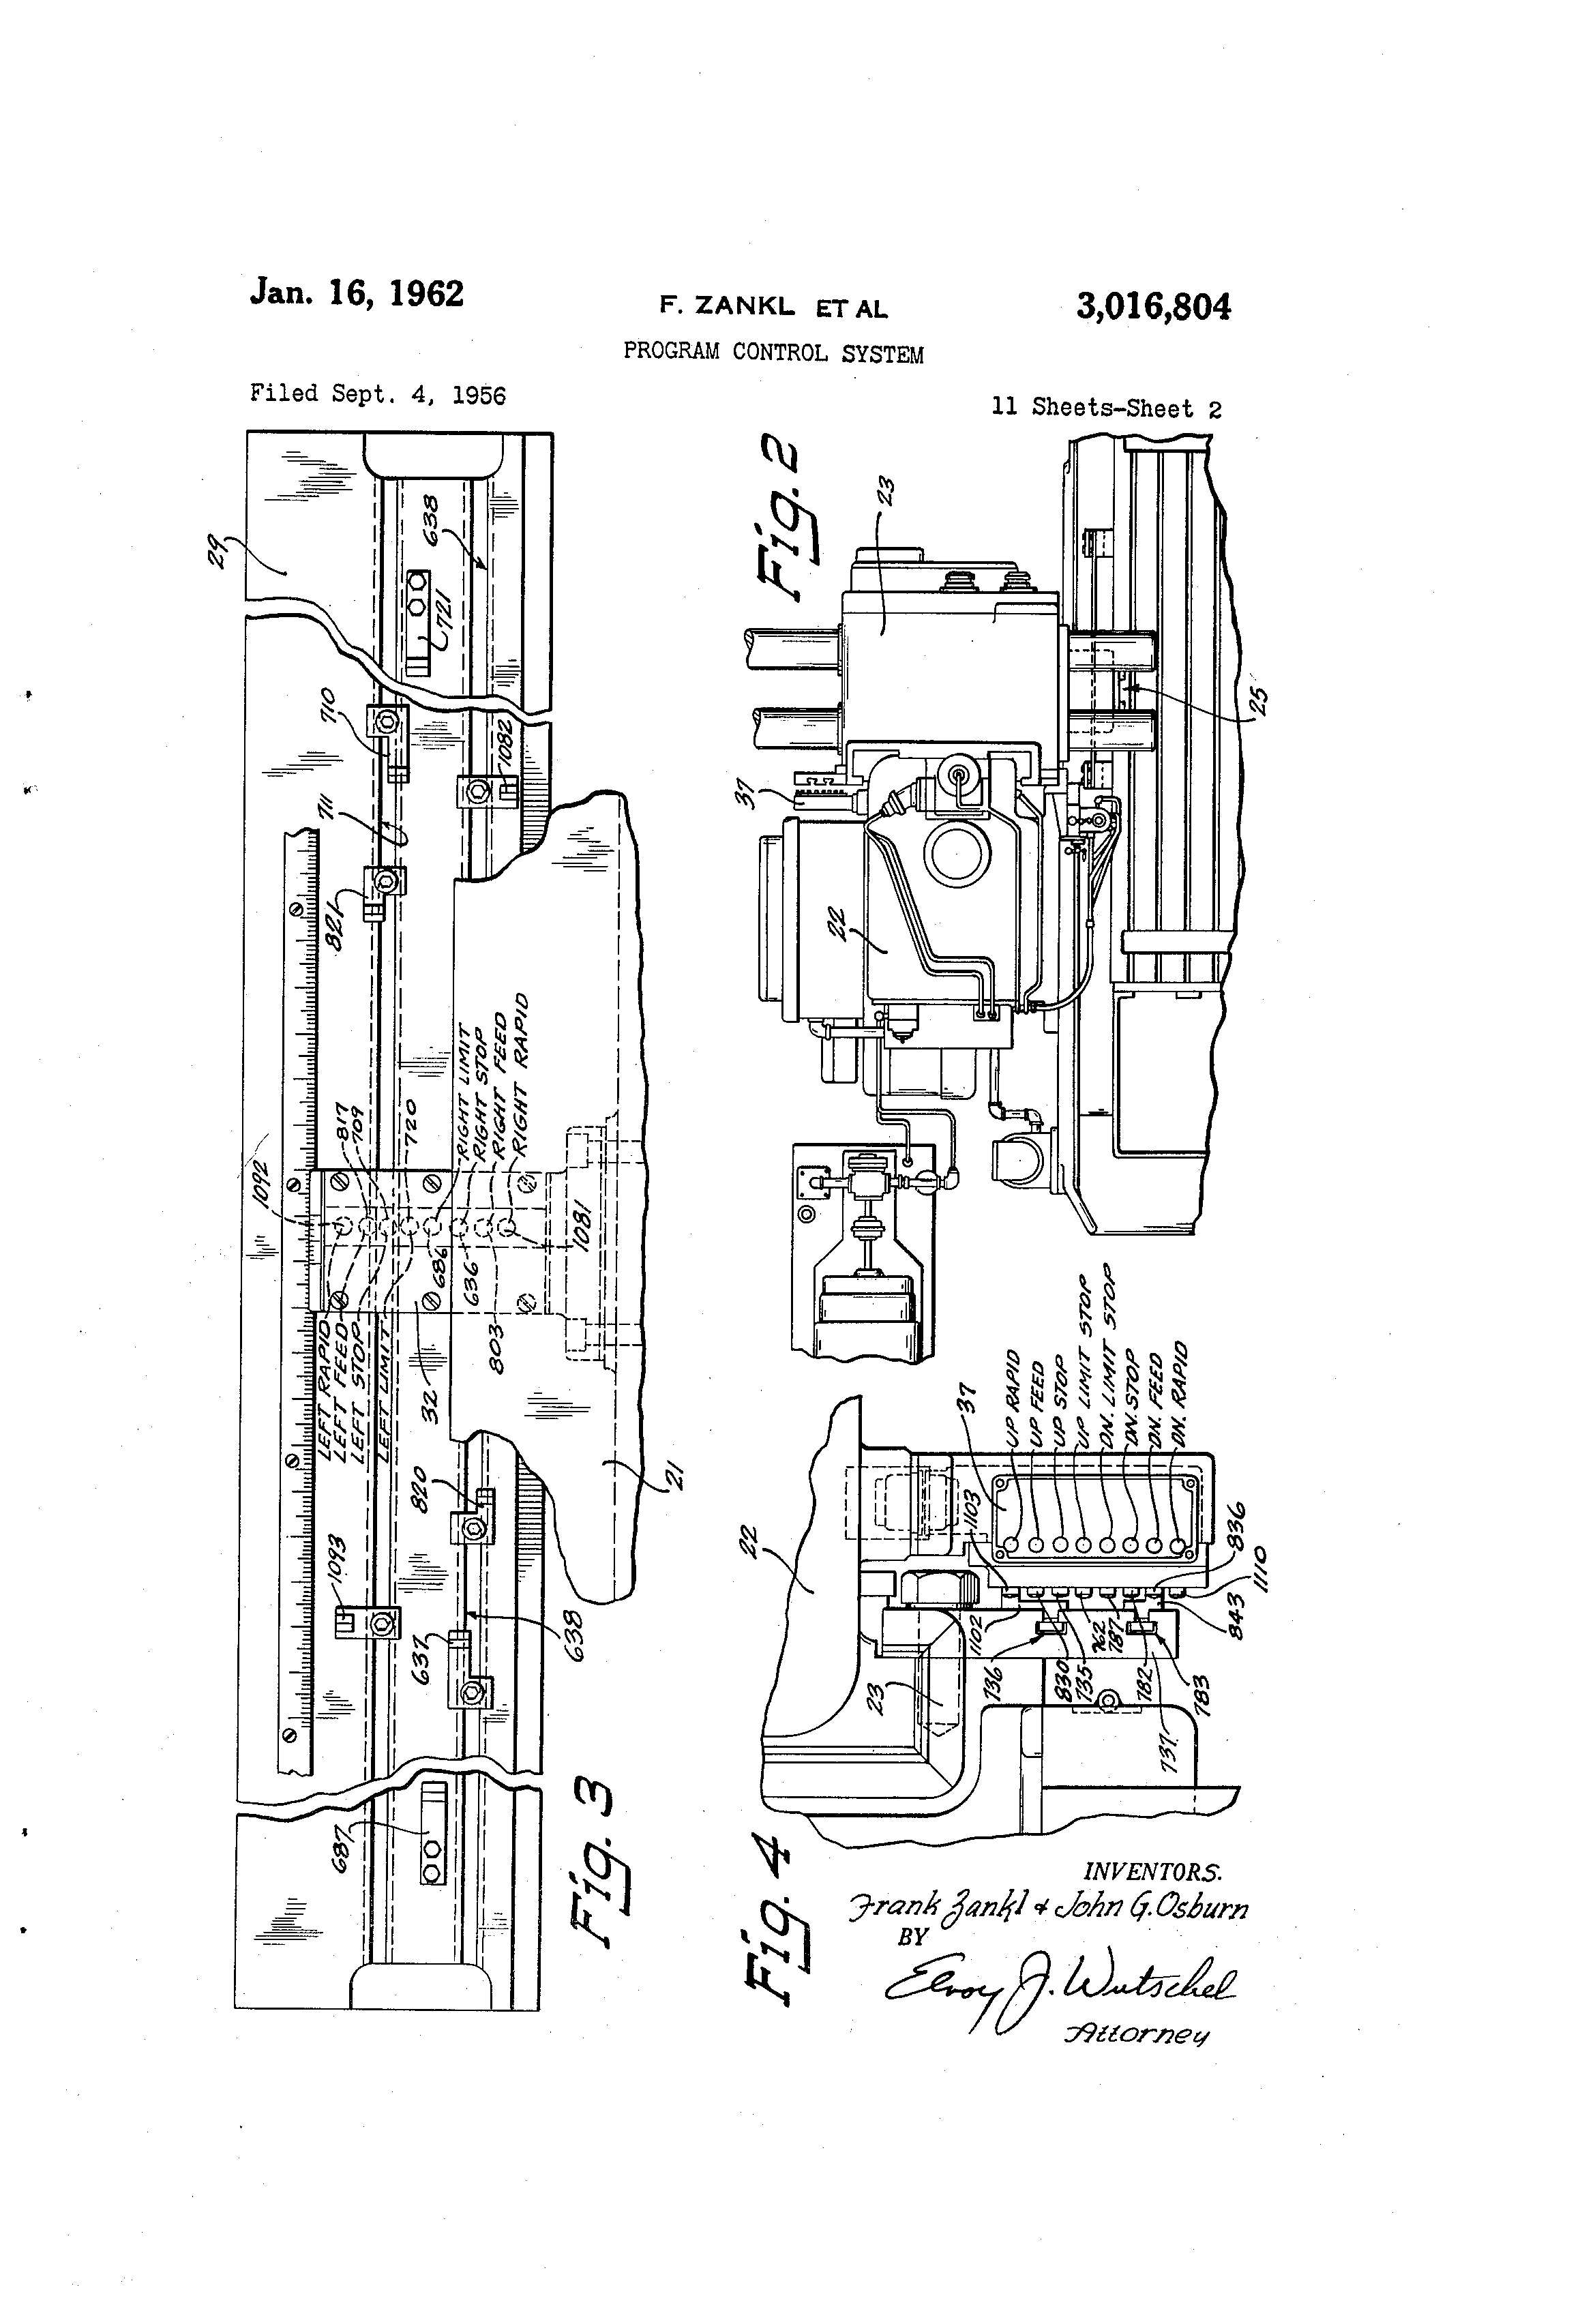 Brevet Us3016804 Program Control System Google Brevets The Hydraulic Pressure Circuit Controlcircuit Patent Drawing